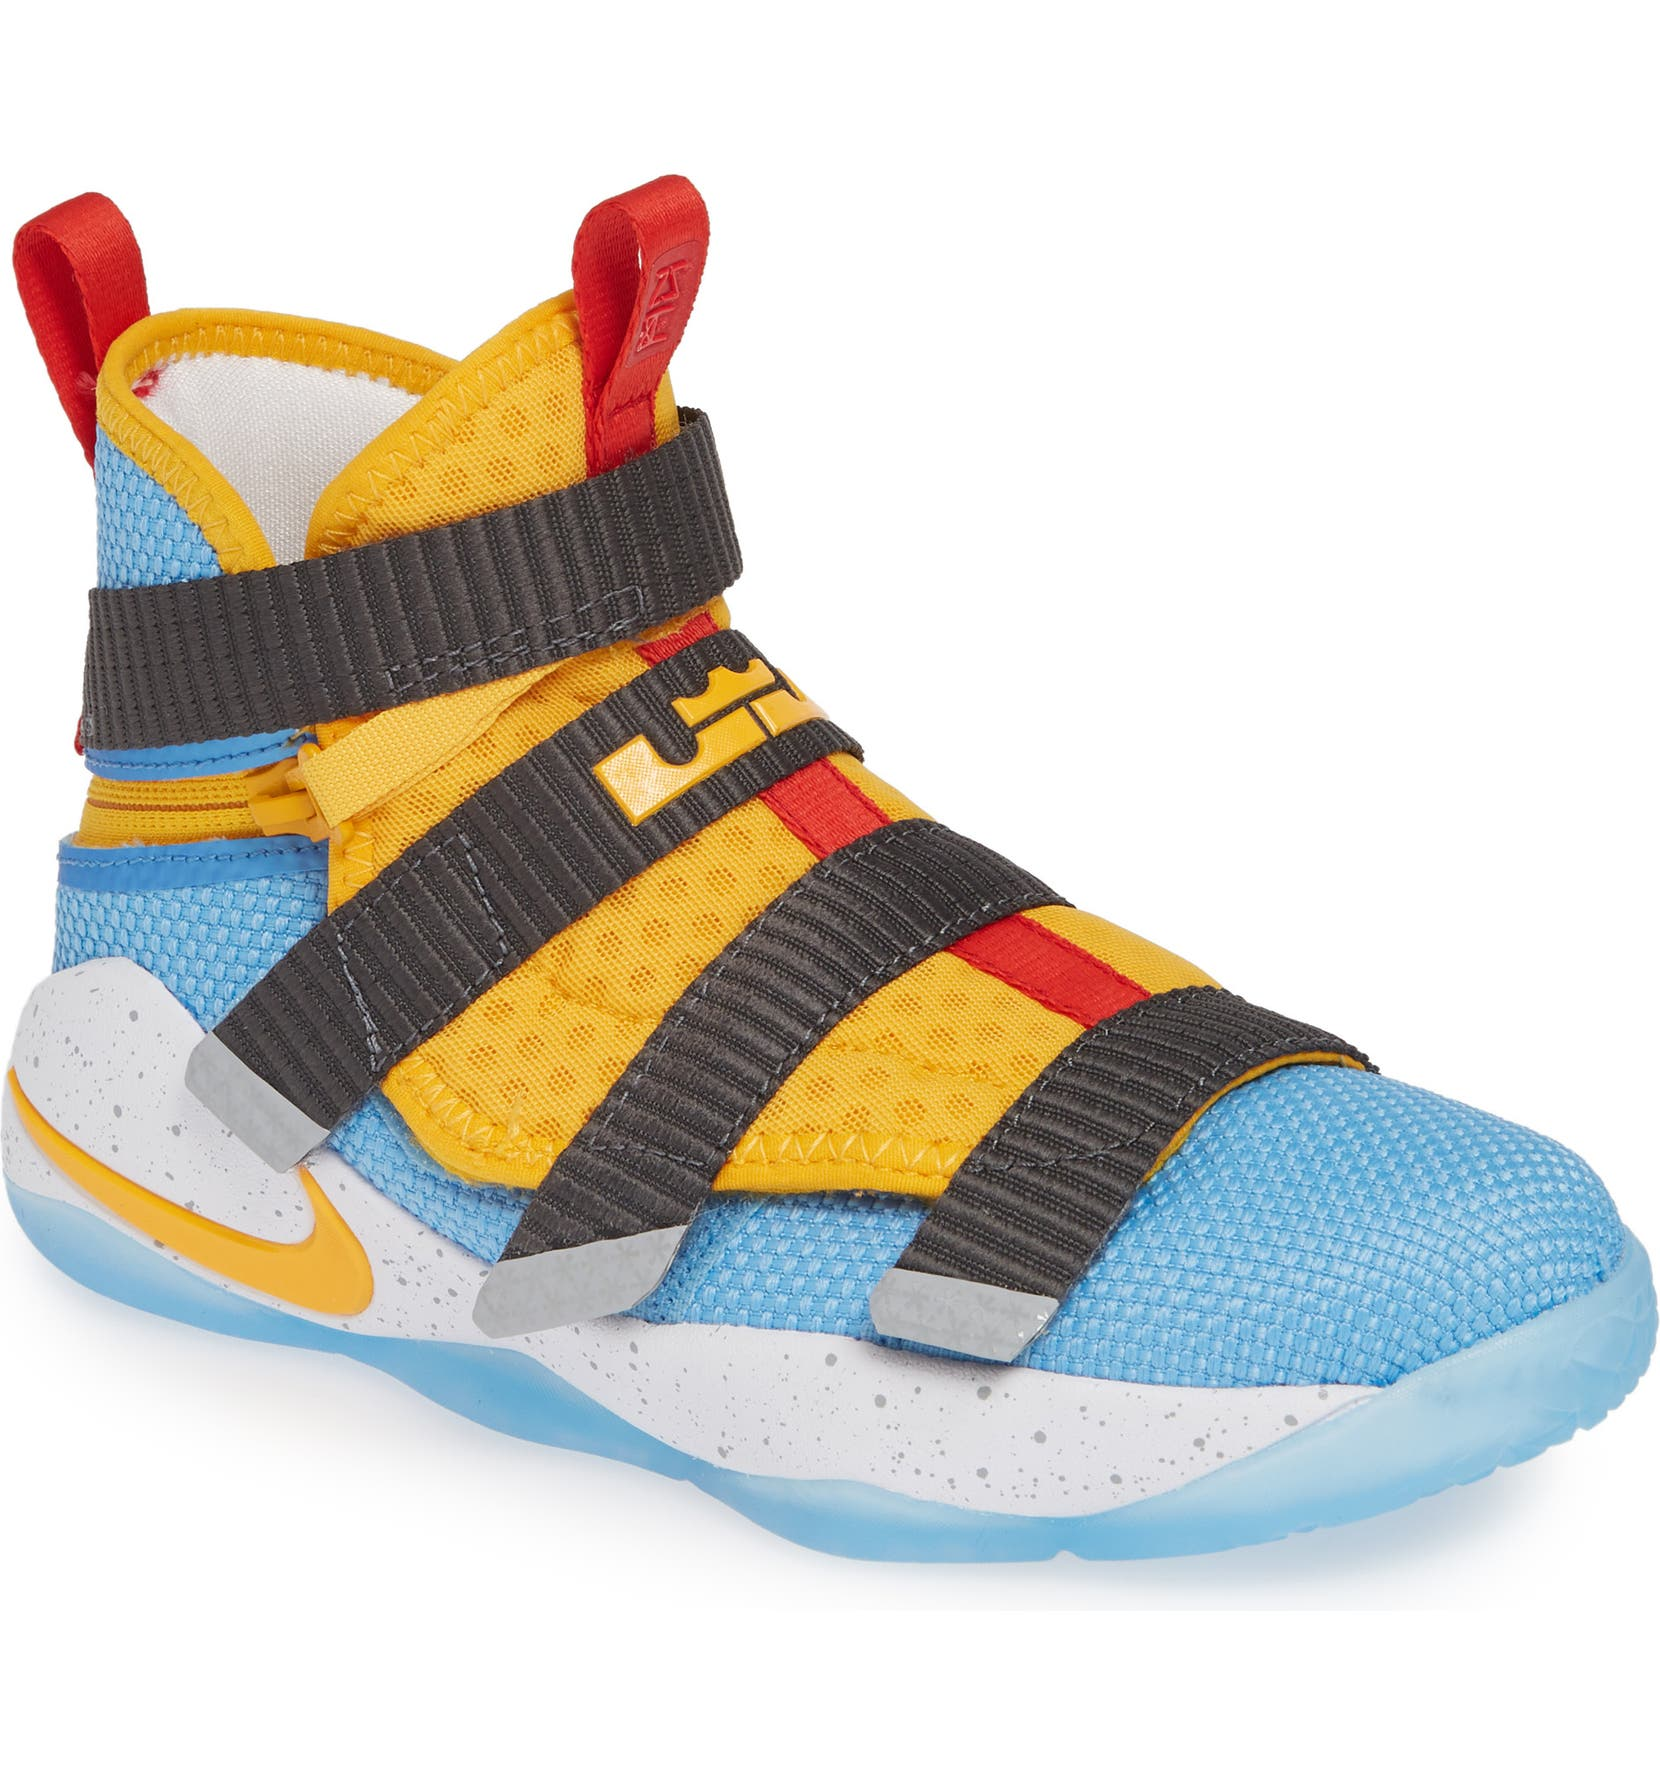 cheap for discount c1b1f 22b06 Nike LeBron Soldier XI FlyEase High Top Sneaker (Toddler, Little Kid & Big  Kid) | Nordstrom